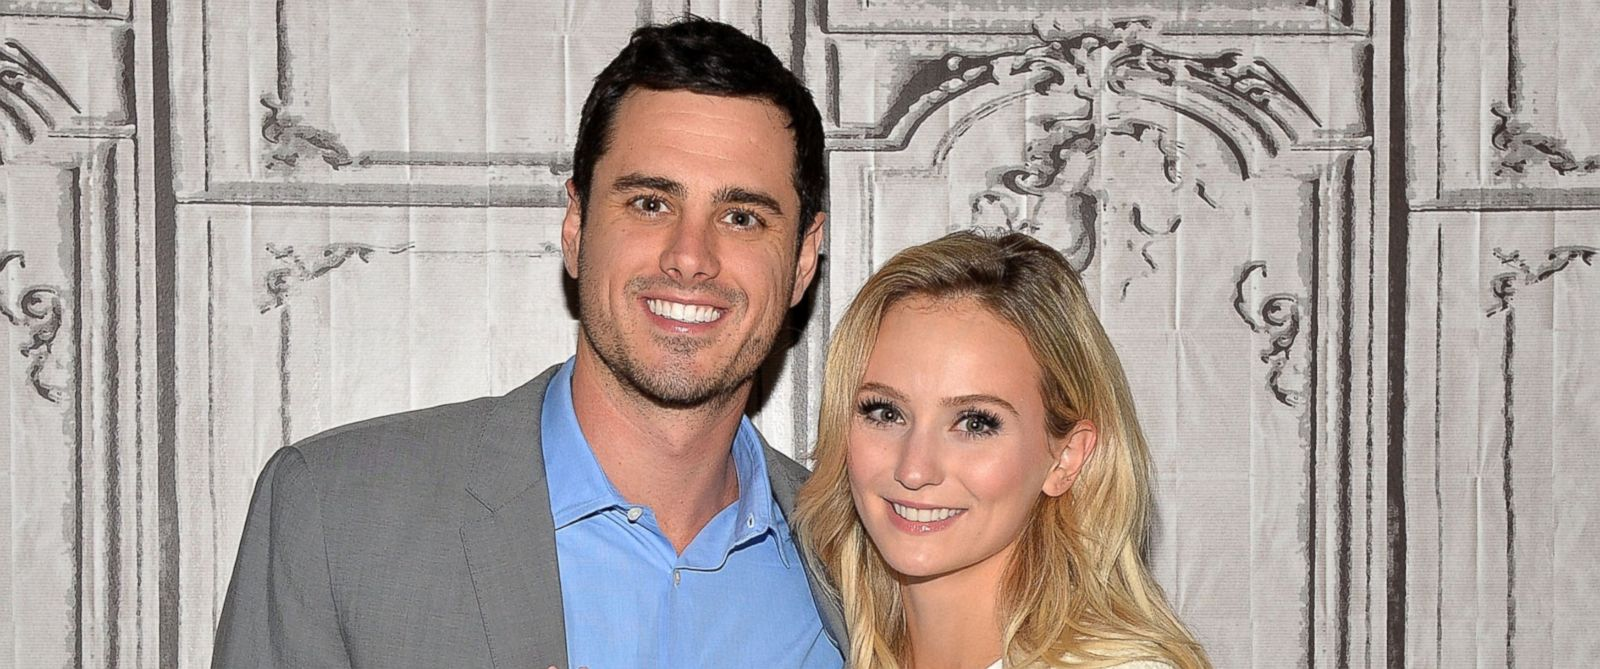 """PHOTO: Bachelor Ben Higgins and Lauren Bushnell attend the AOL Build Speaker Series to discuss """"The Bachelor"""" at AOL Studios on March 15, 2016 in New York City."""